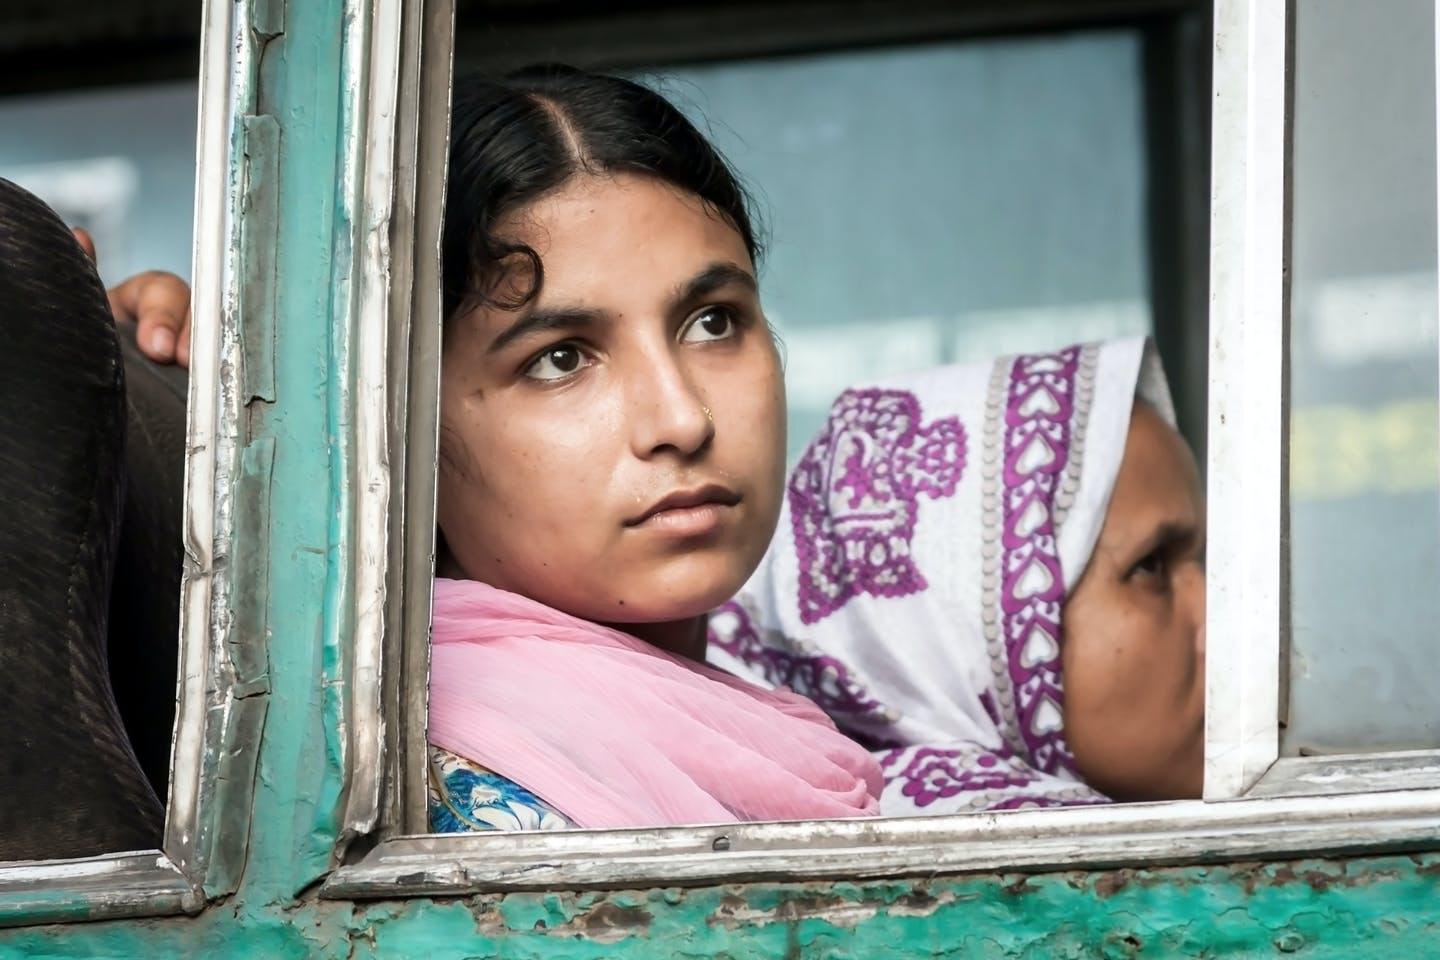 A woman in Dhaka looks out forlornly.